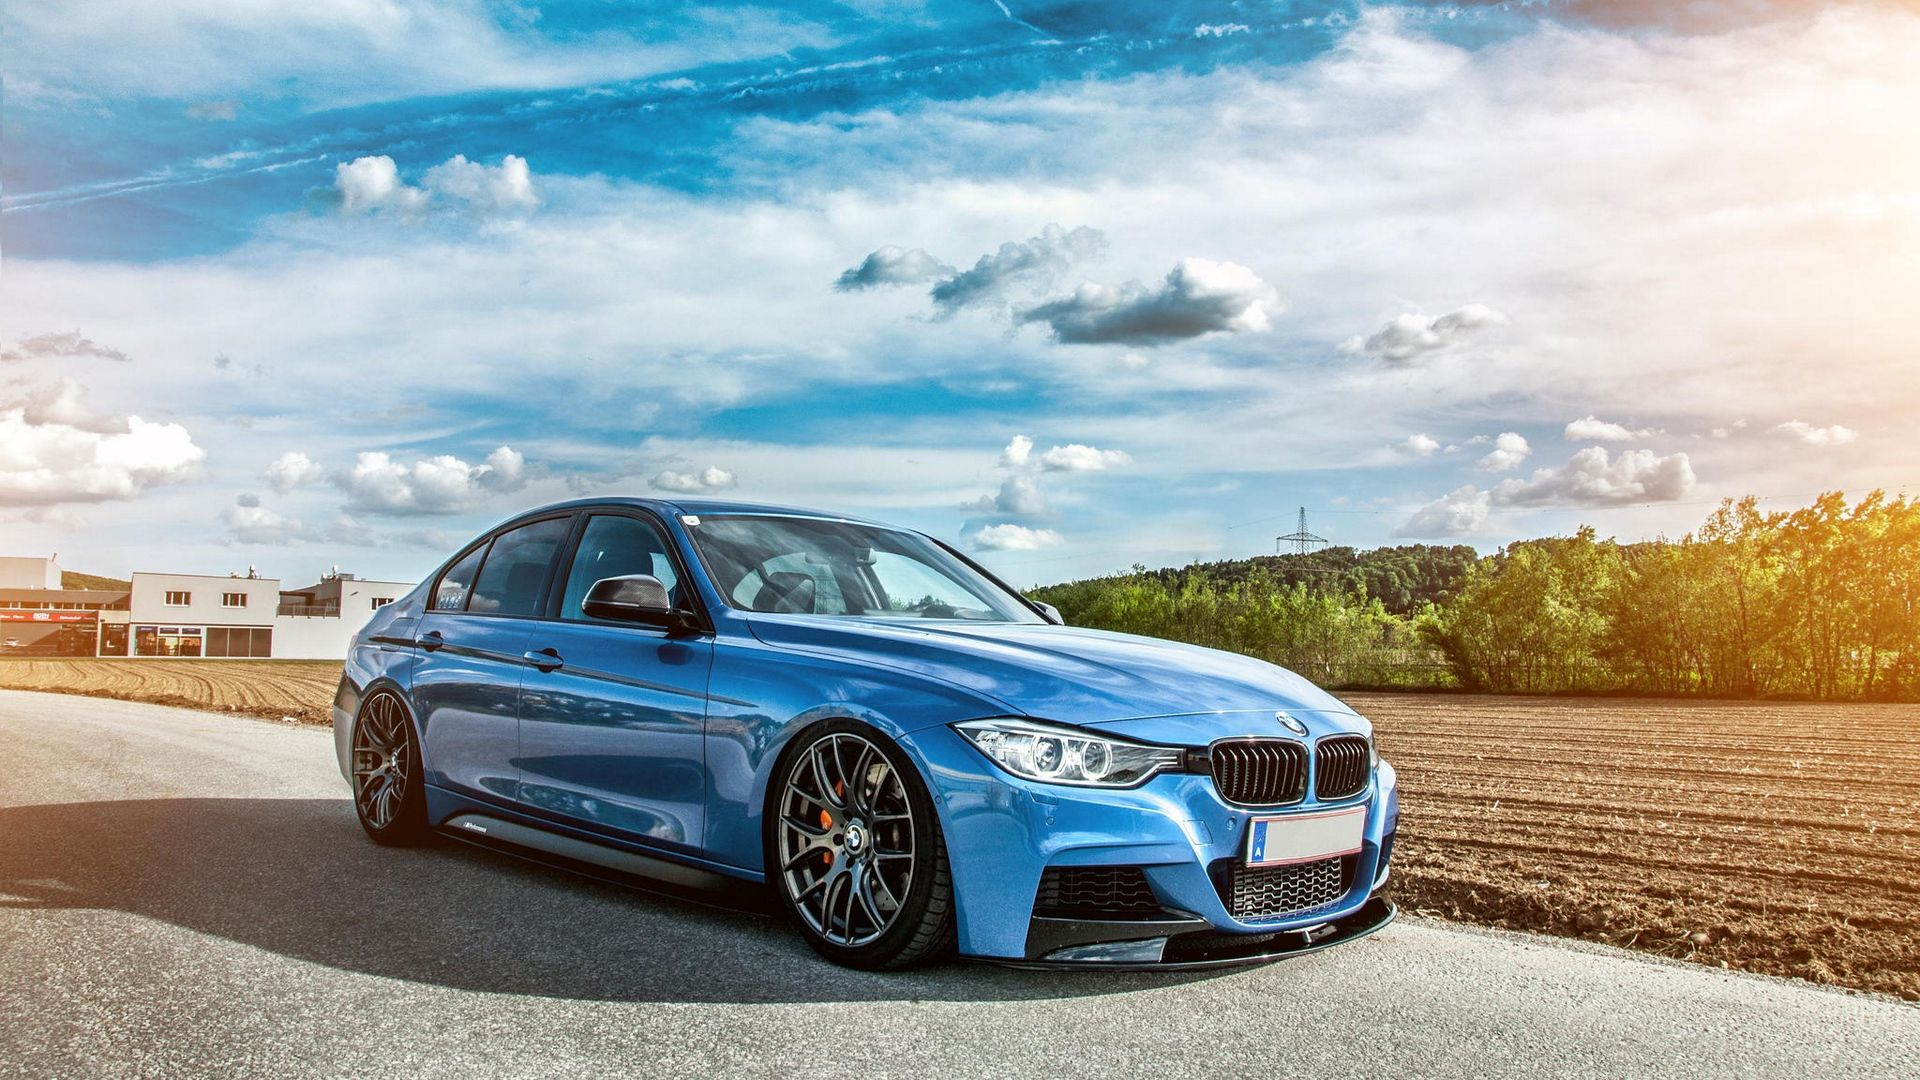 BMW F30 Wallpapers   Top BMW F30 Backgrounds   WallpaperAccess 1920x1080